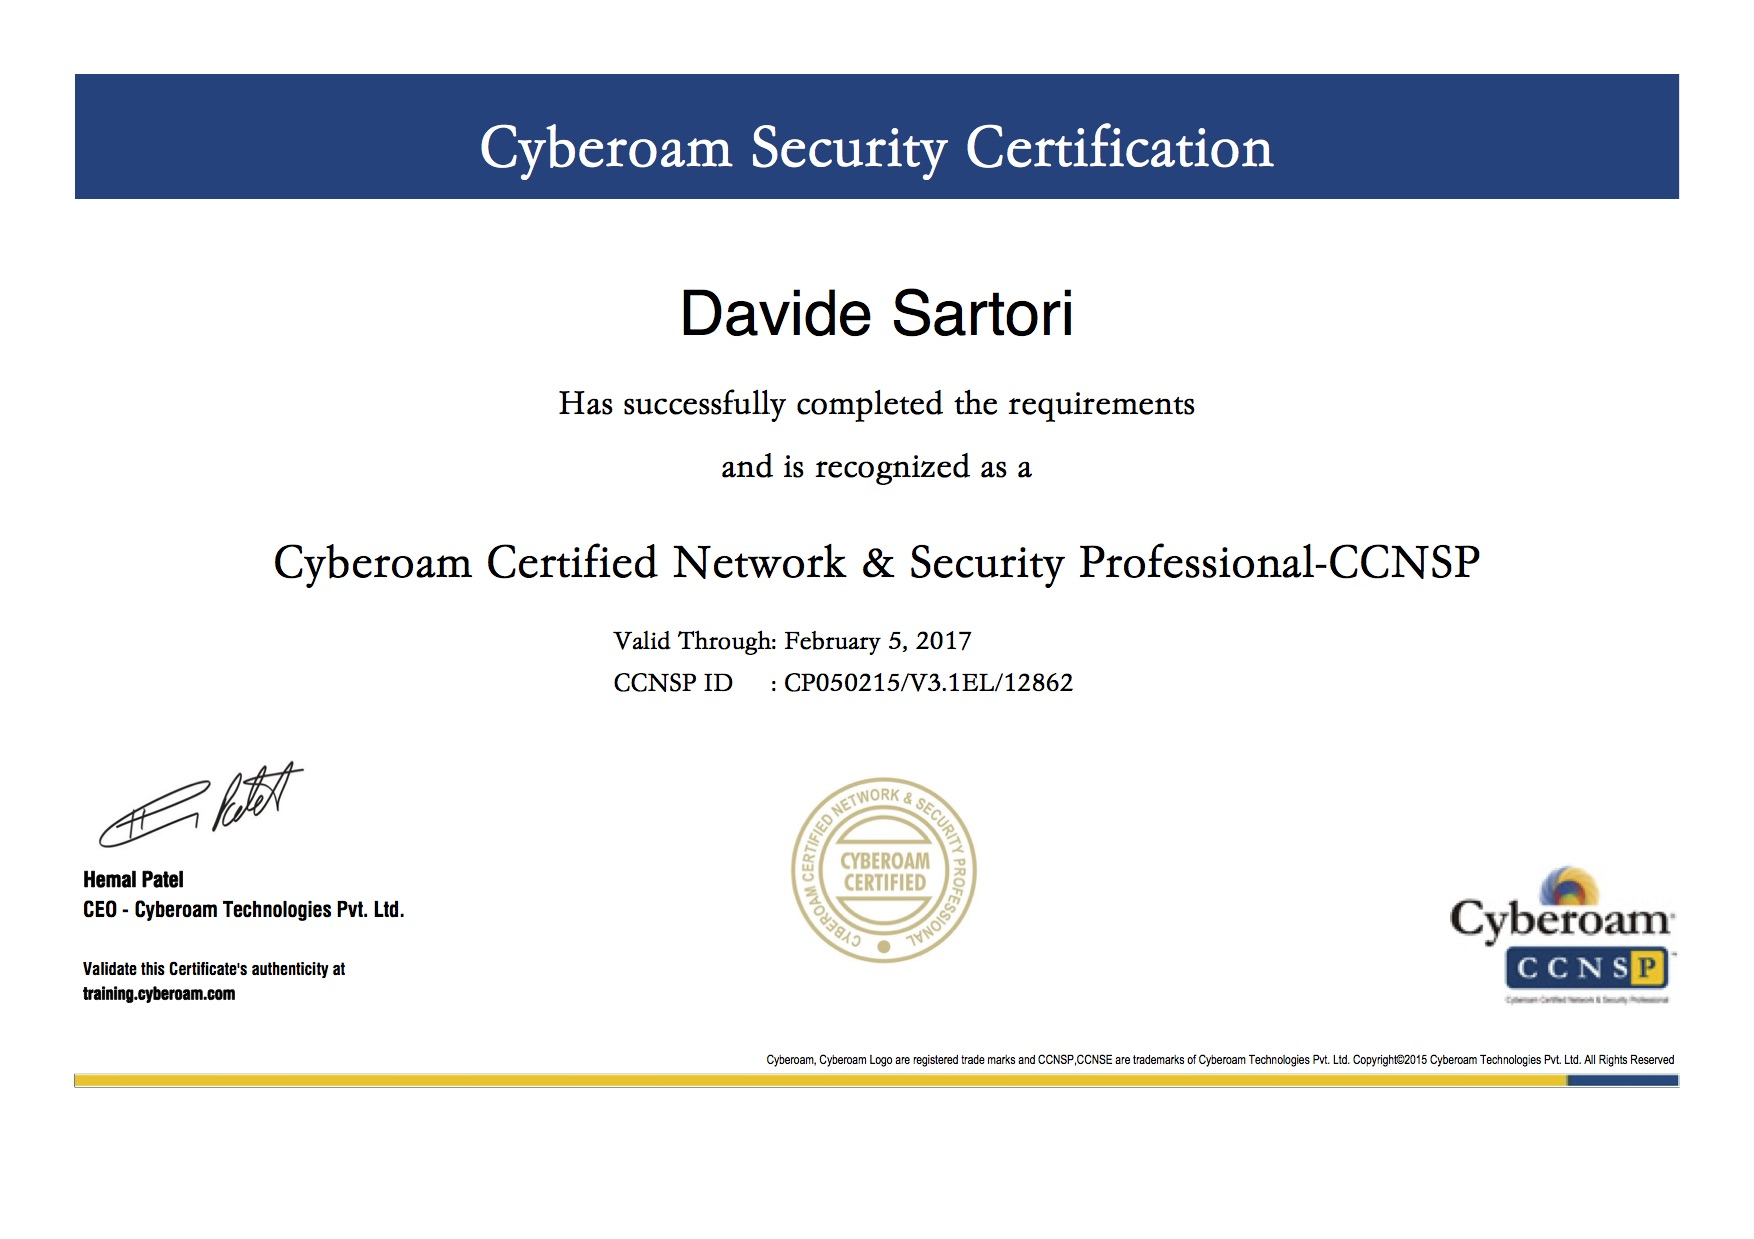 Cyberoam Certified Network & Security Professional CCNSP